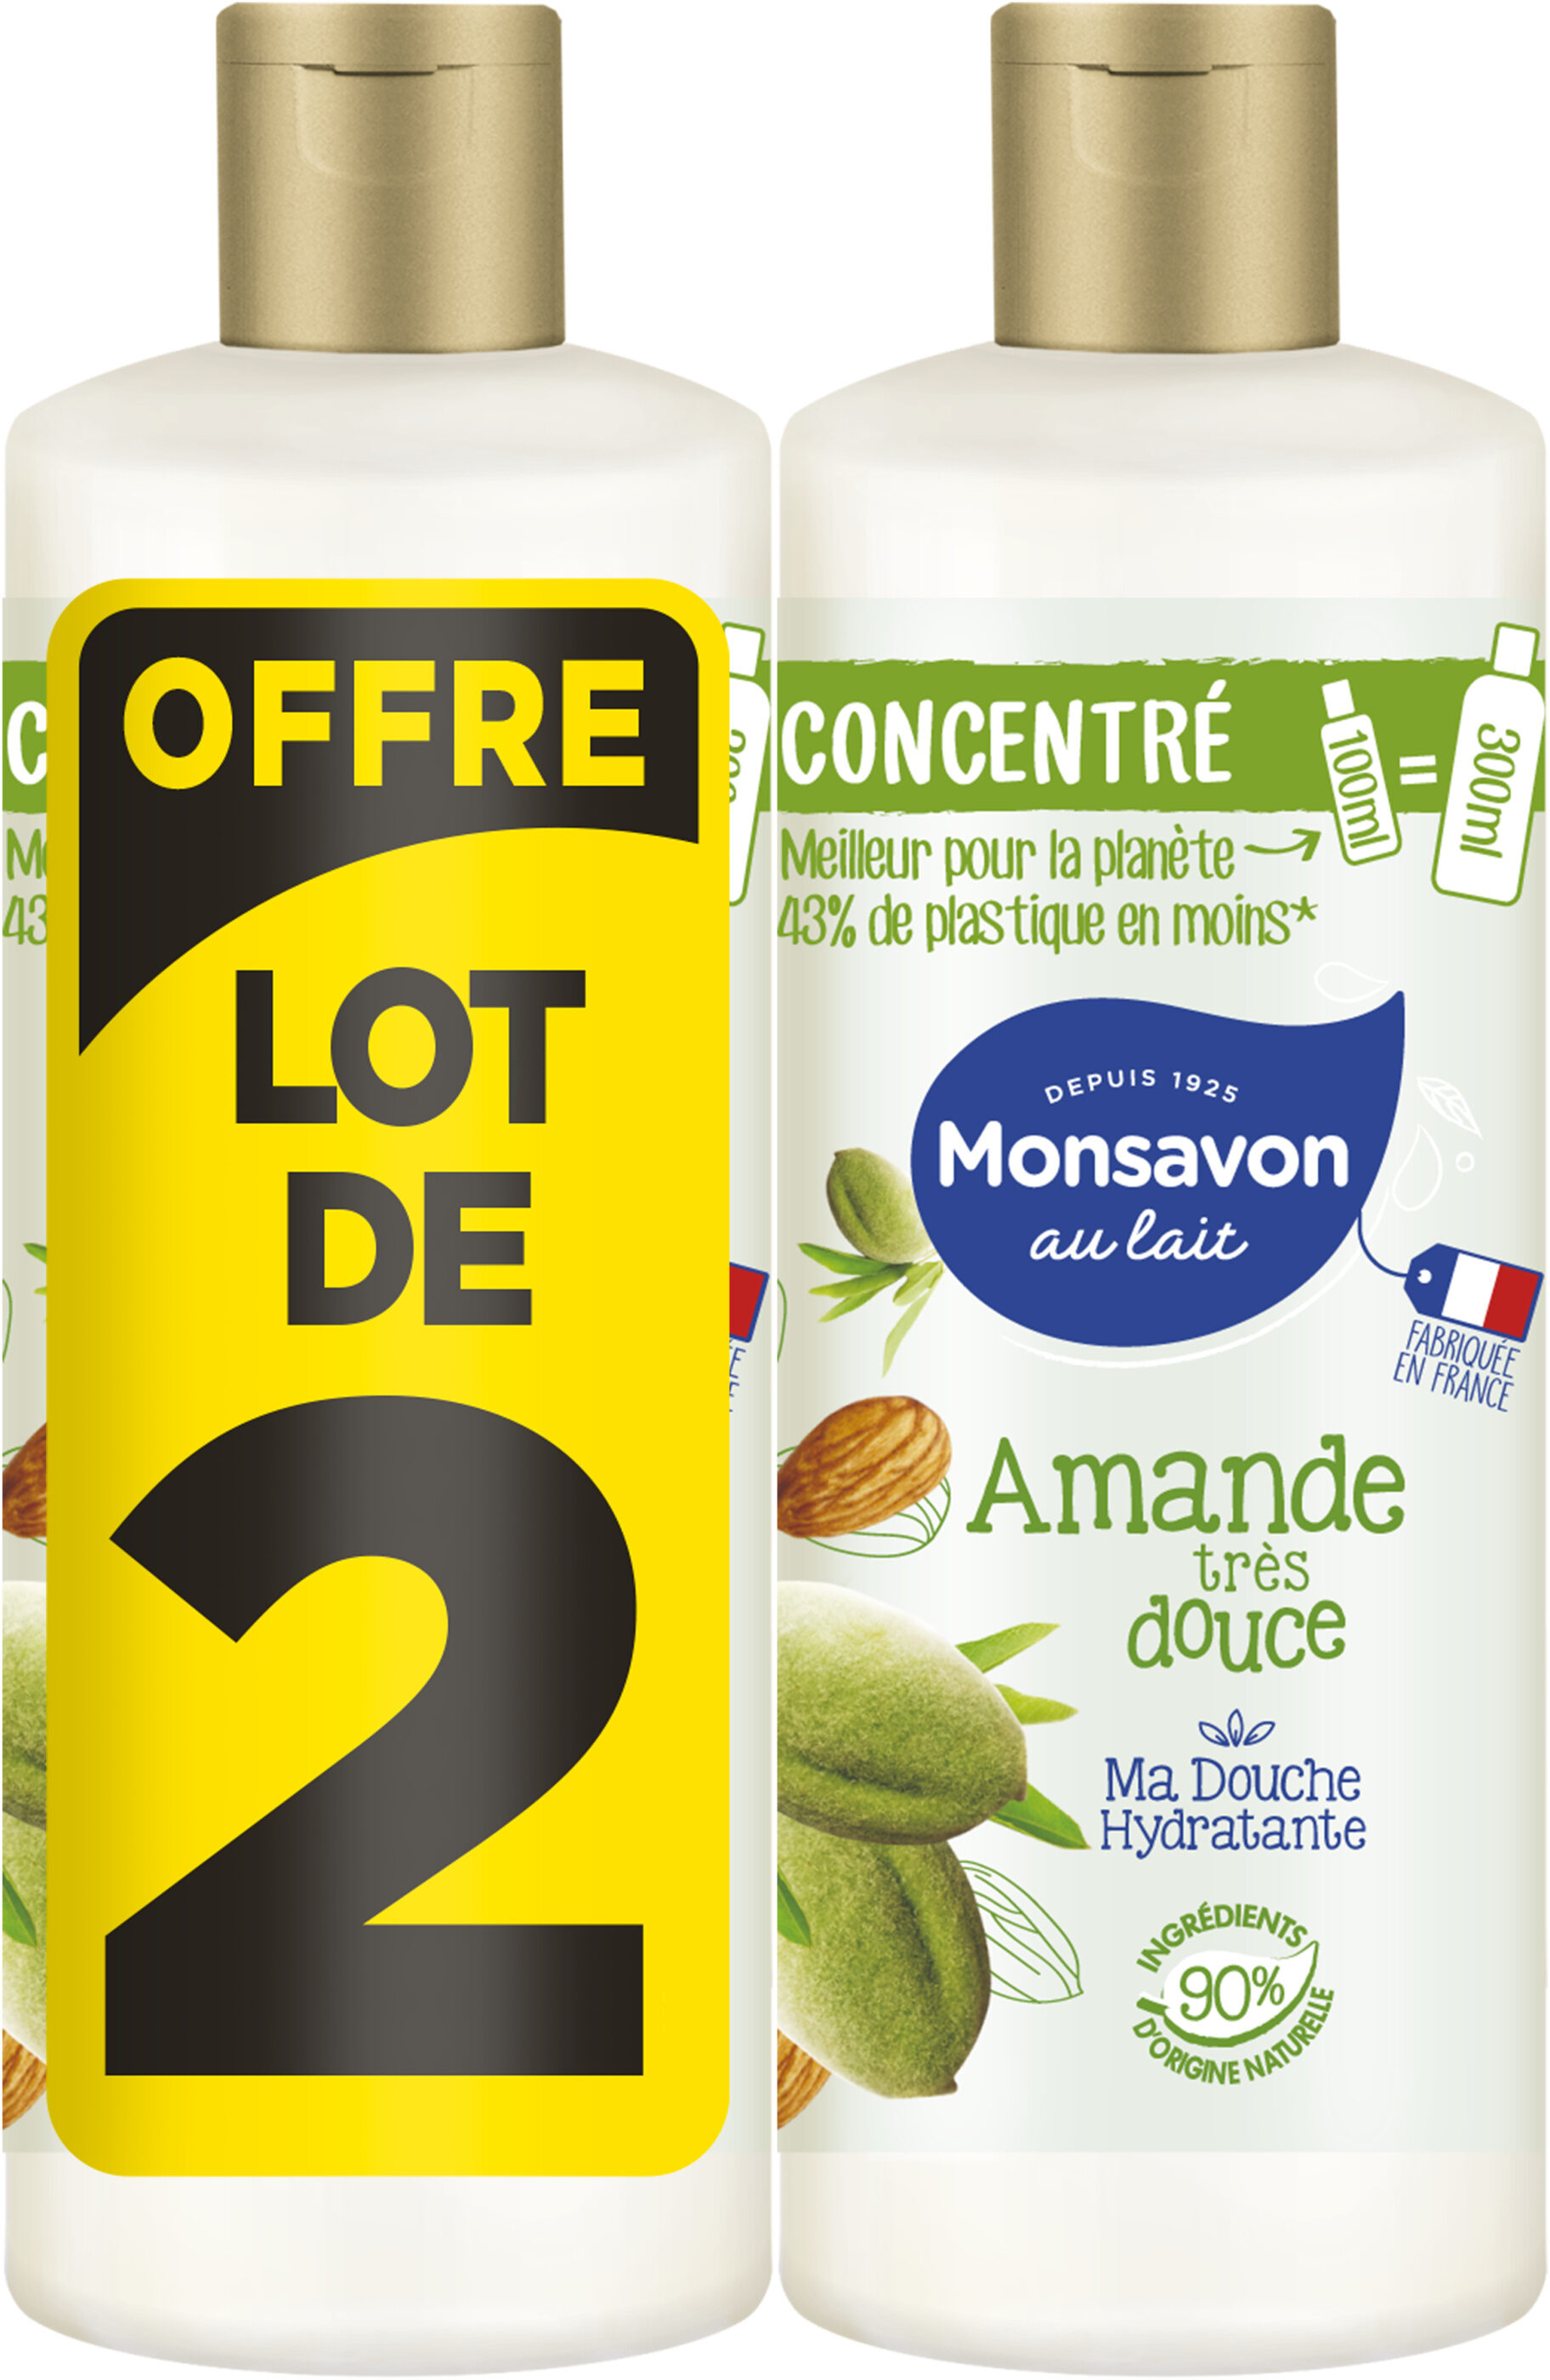 Monsavon Gel Douche Femme Concentré Amande Très Douce Lot 2x100ml - Product - fr